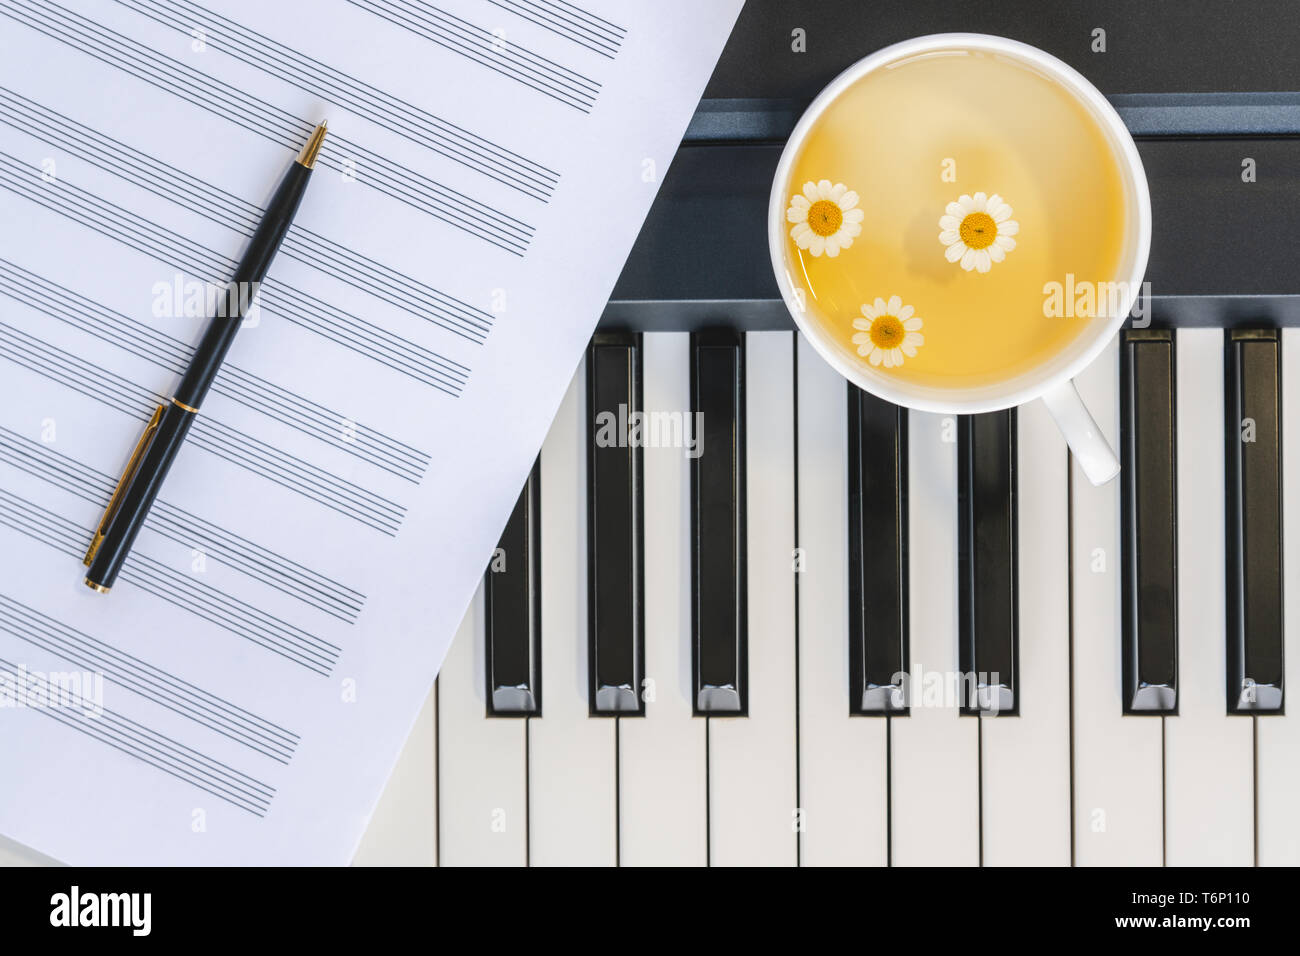 Cup of Chamomile Tea on a Piano Keyboard, Music Sheet and Pen. Still Life, Romance, Concept - Stock Image